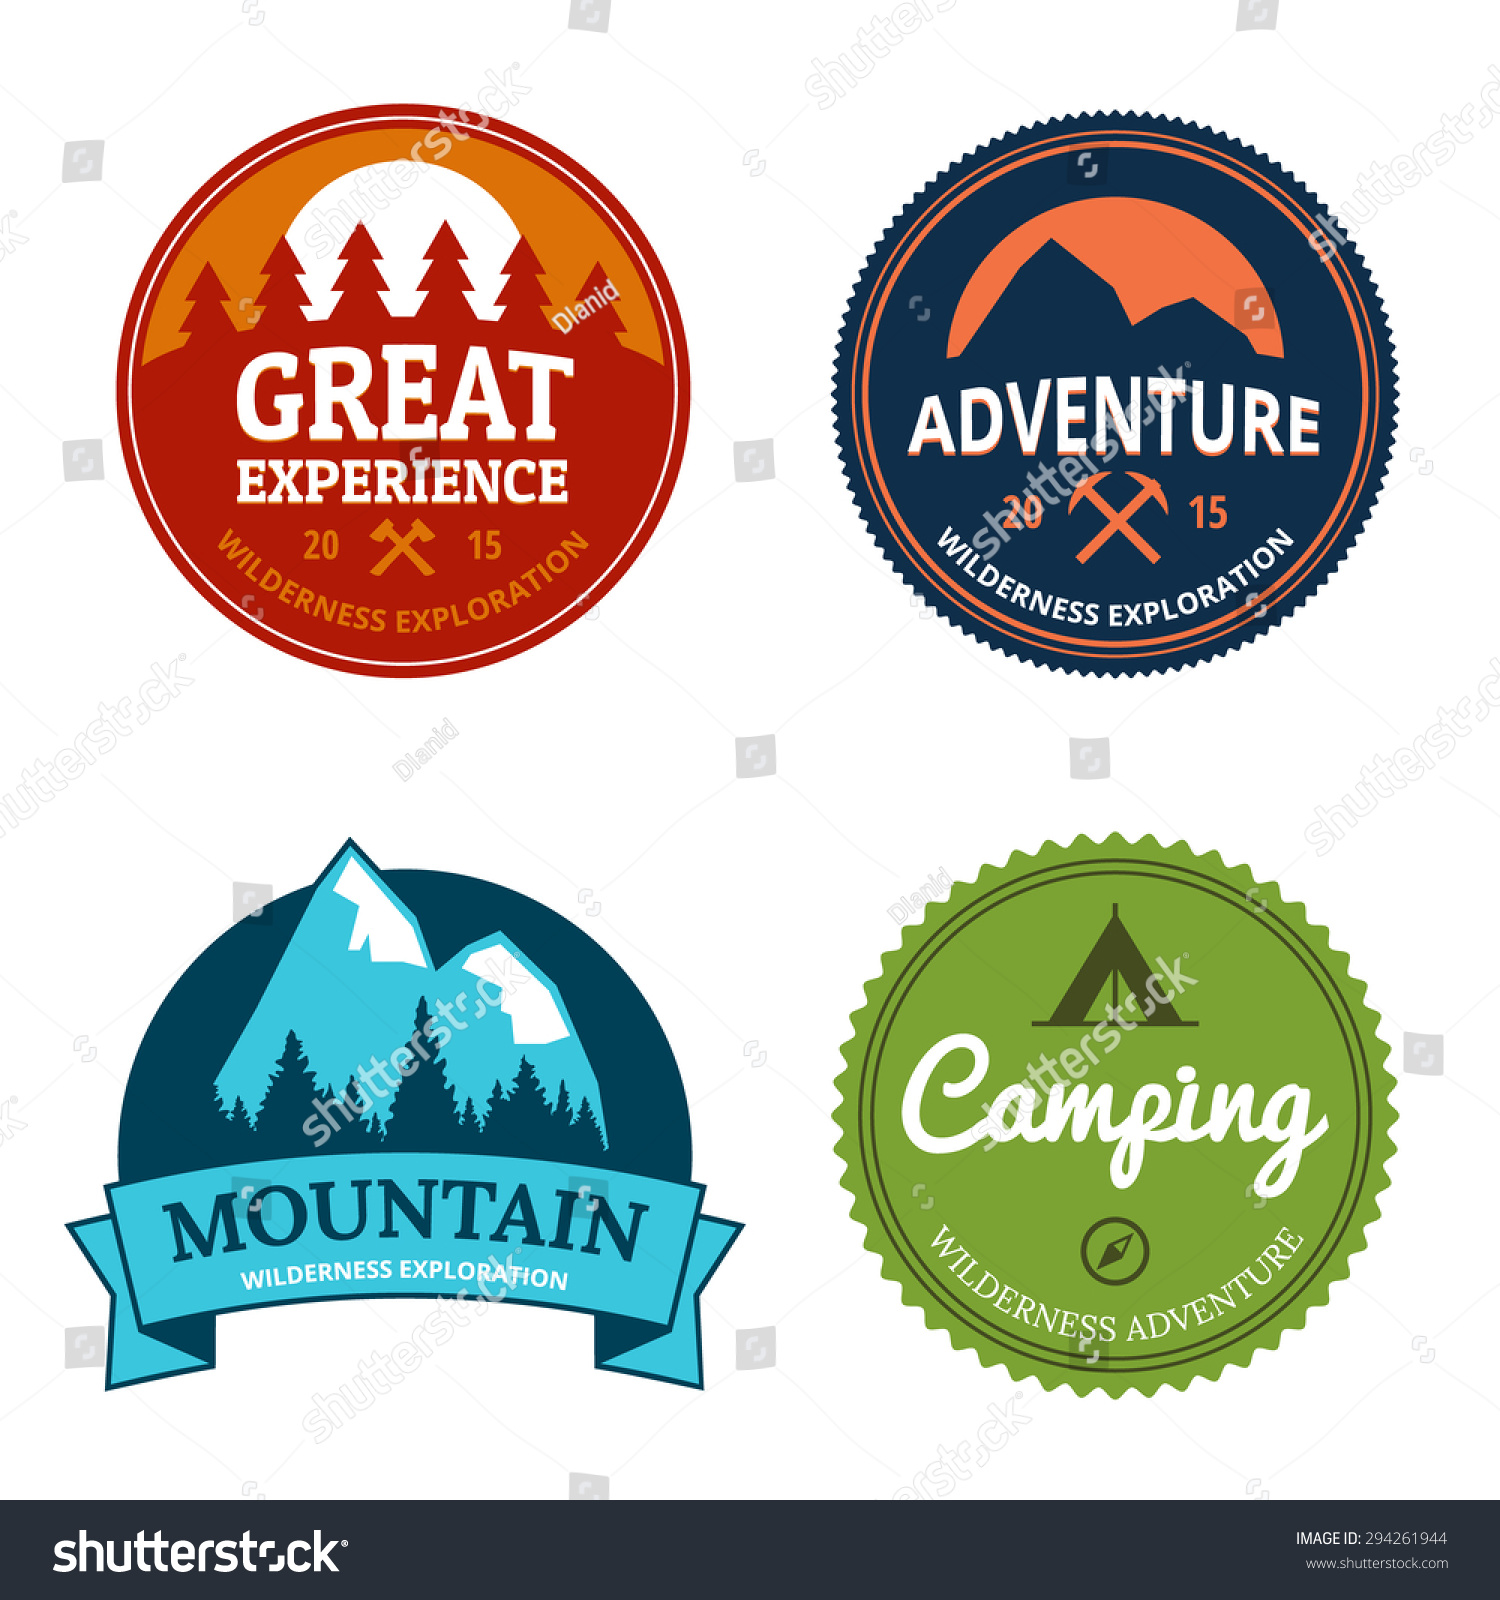 stock illustration forest national park logo outdoor activity camping nature exploration symbol vect